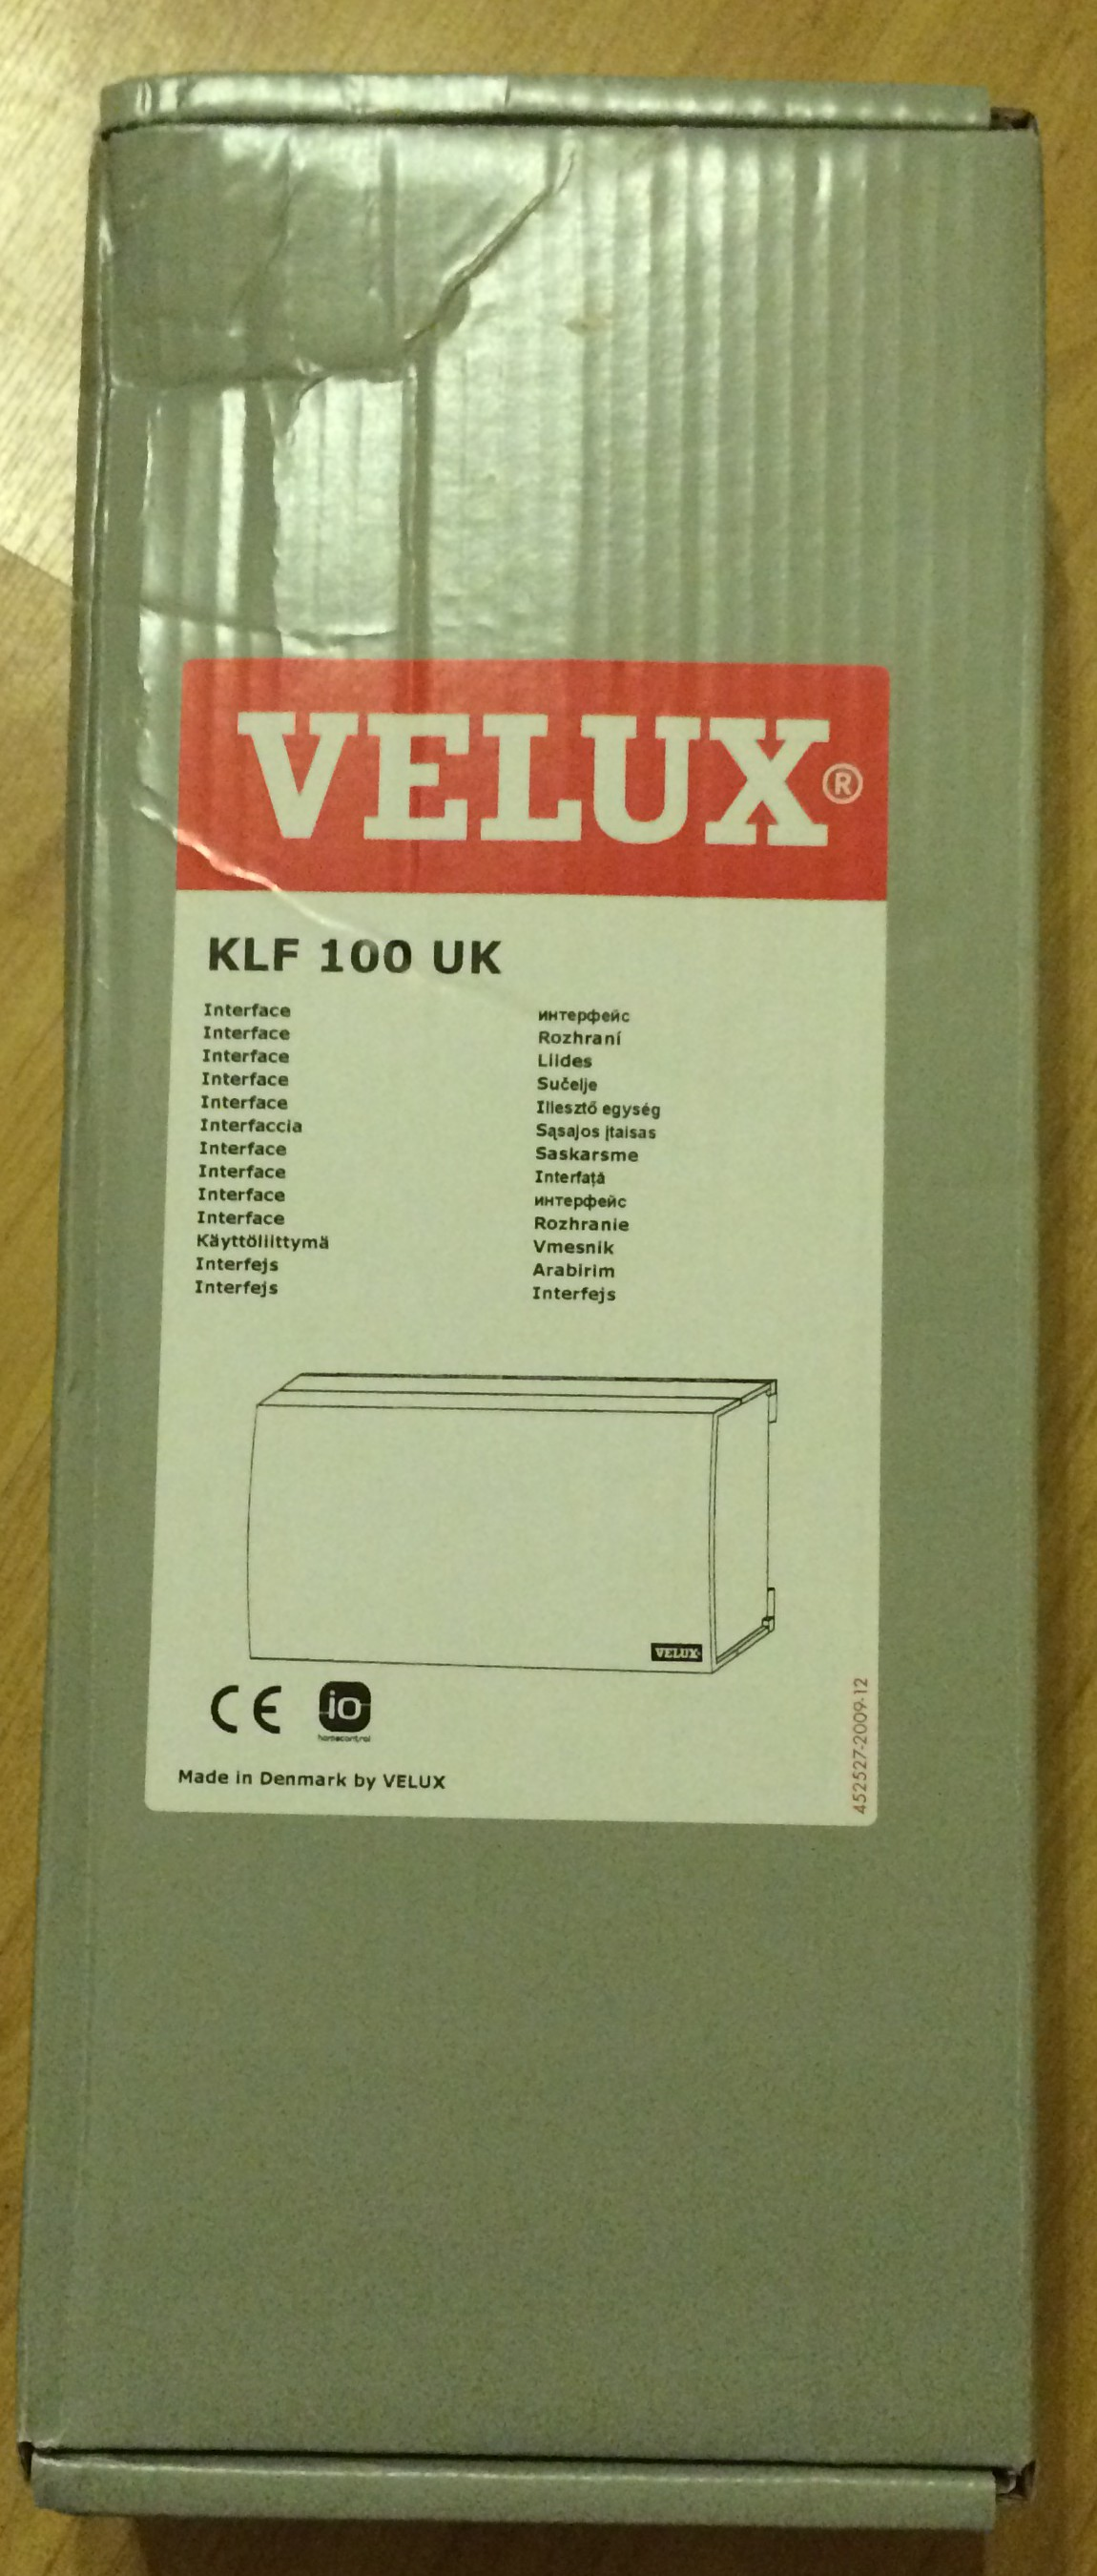 klf100_boxed e1448917936740 controling velux windows with fibaro the world that is k2aab velux klf 100 wiring diagram at panicattacktreatment.co